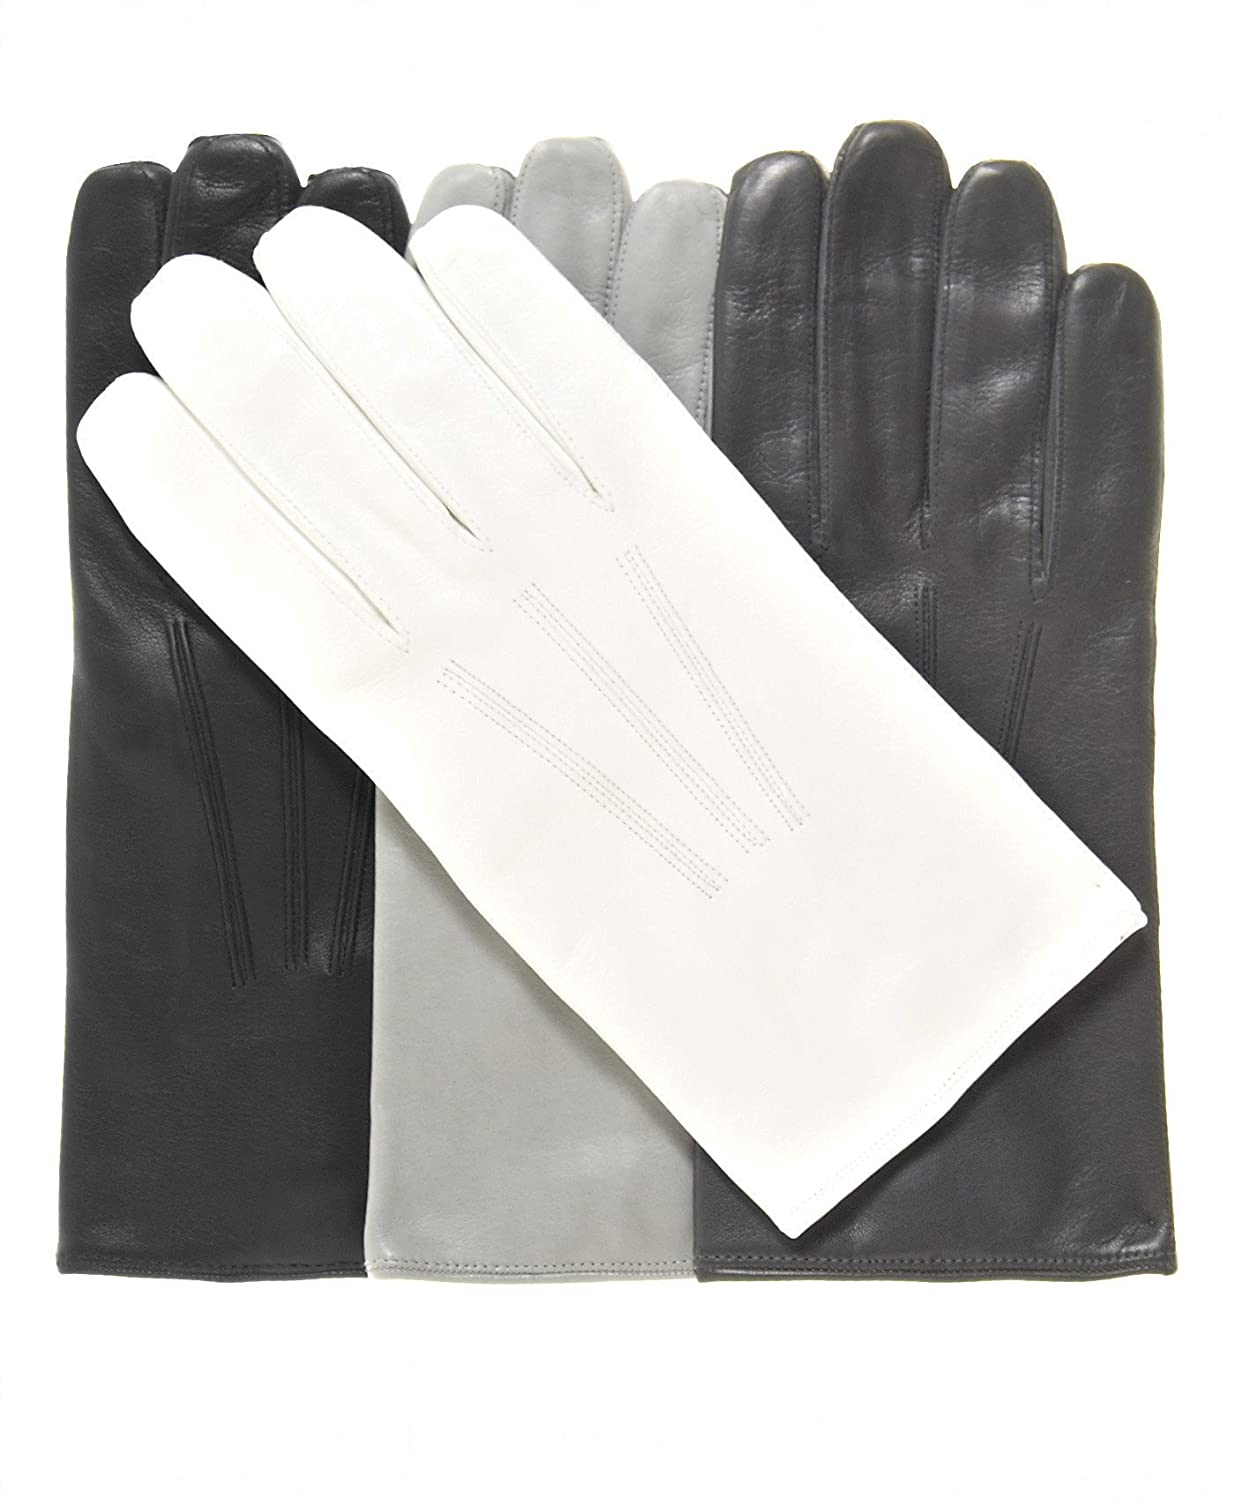 1920s Mens Formal Wear Clothing Mens Lined Lambskin Leather Gloves with Wrist Snap $99.95 AT vintagedancer.com